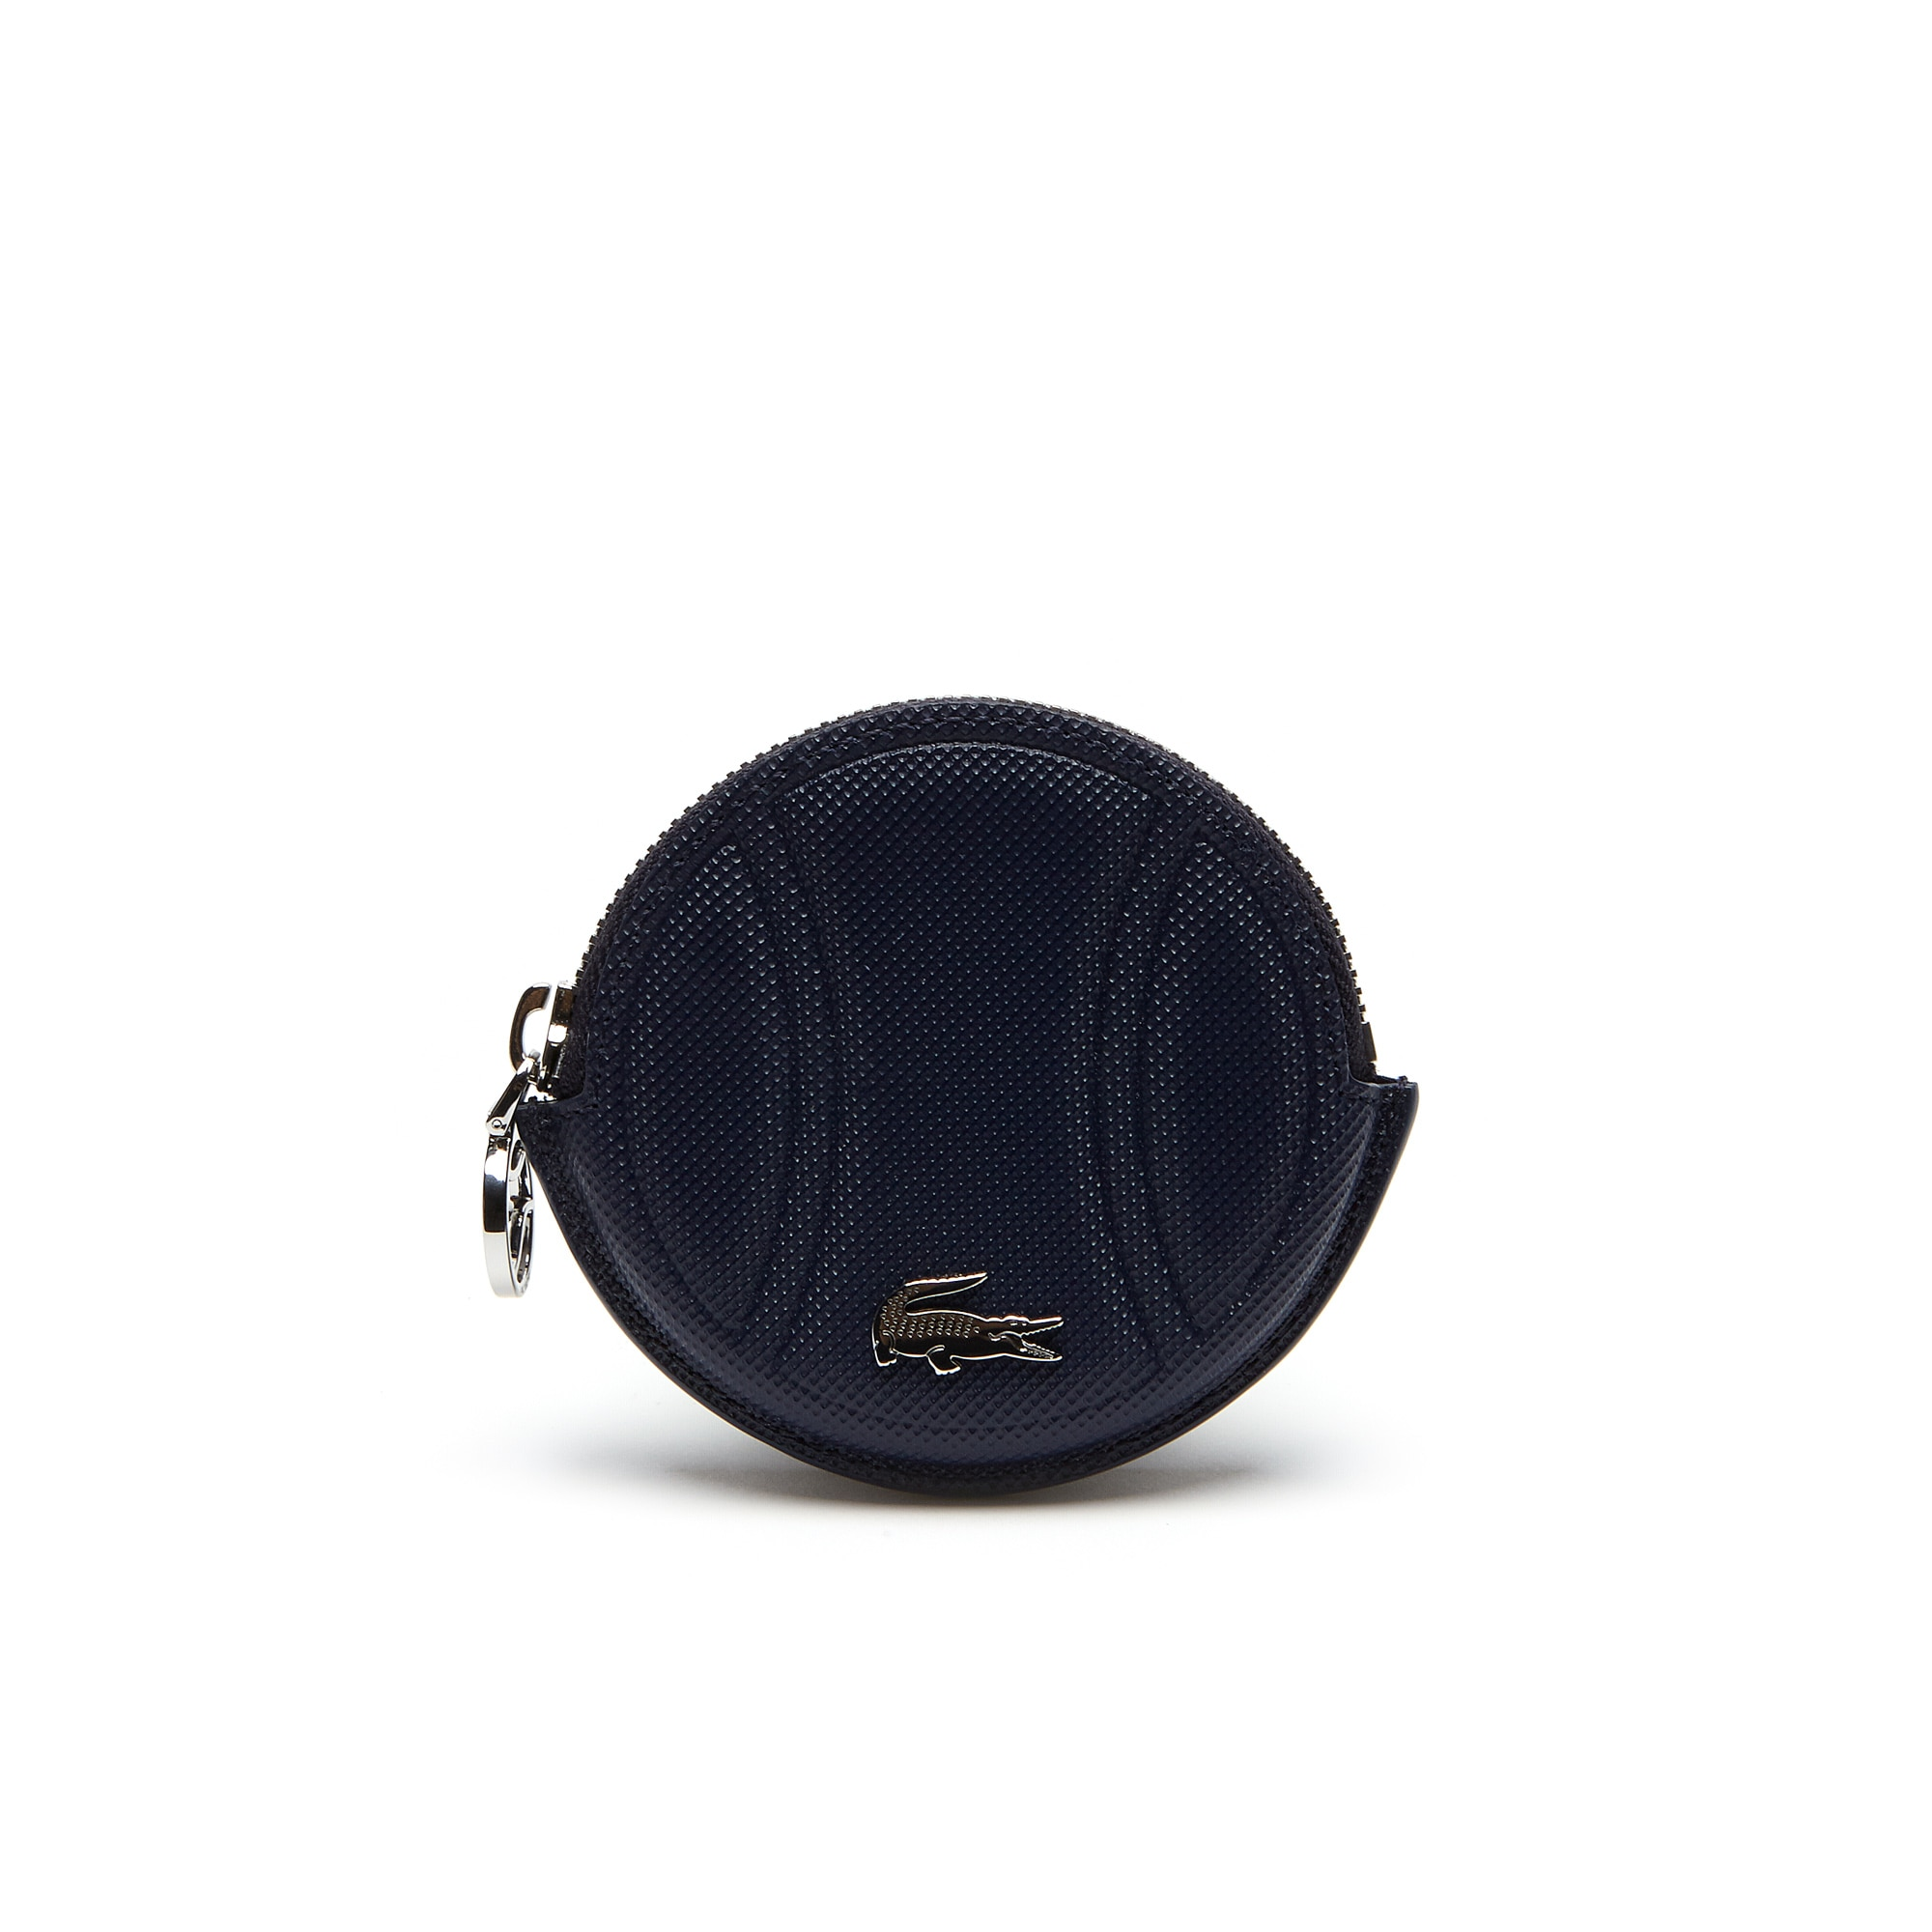 Women's Daily Classic Coated Piqué Canvas Coin Pouch